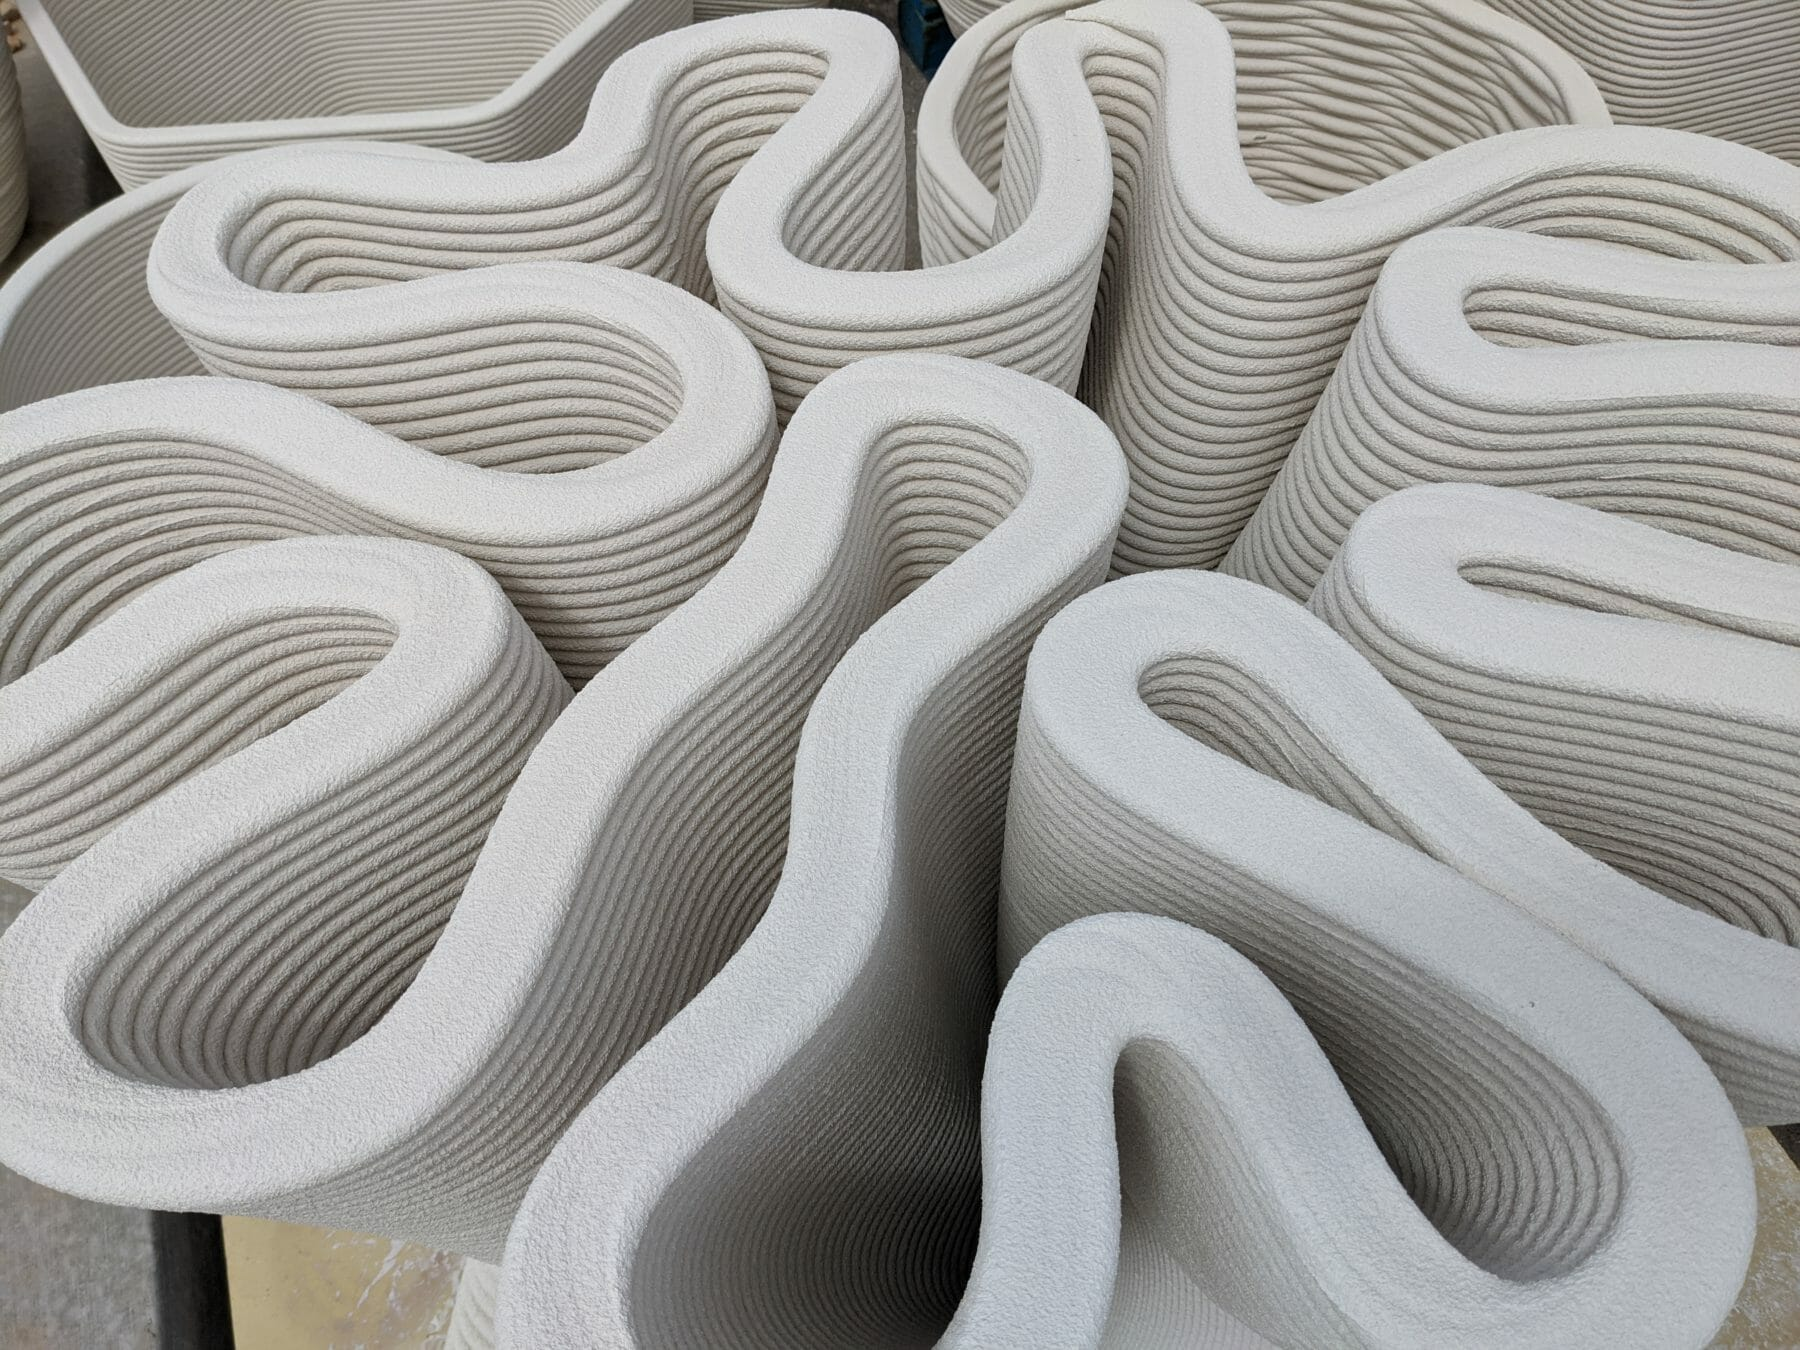 Pikus 3D has tested Sika admixture-based mortar and inks for printing products and smaller elements. Photo via Pikus 3D.